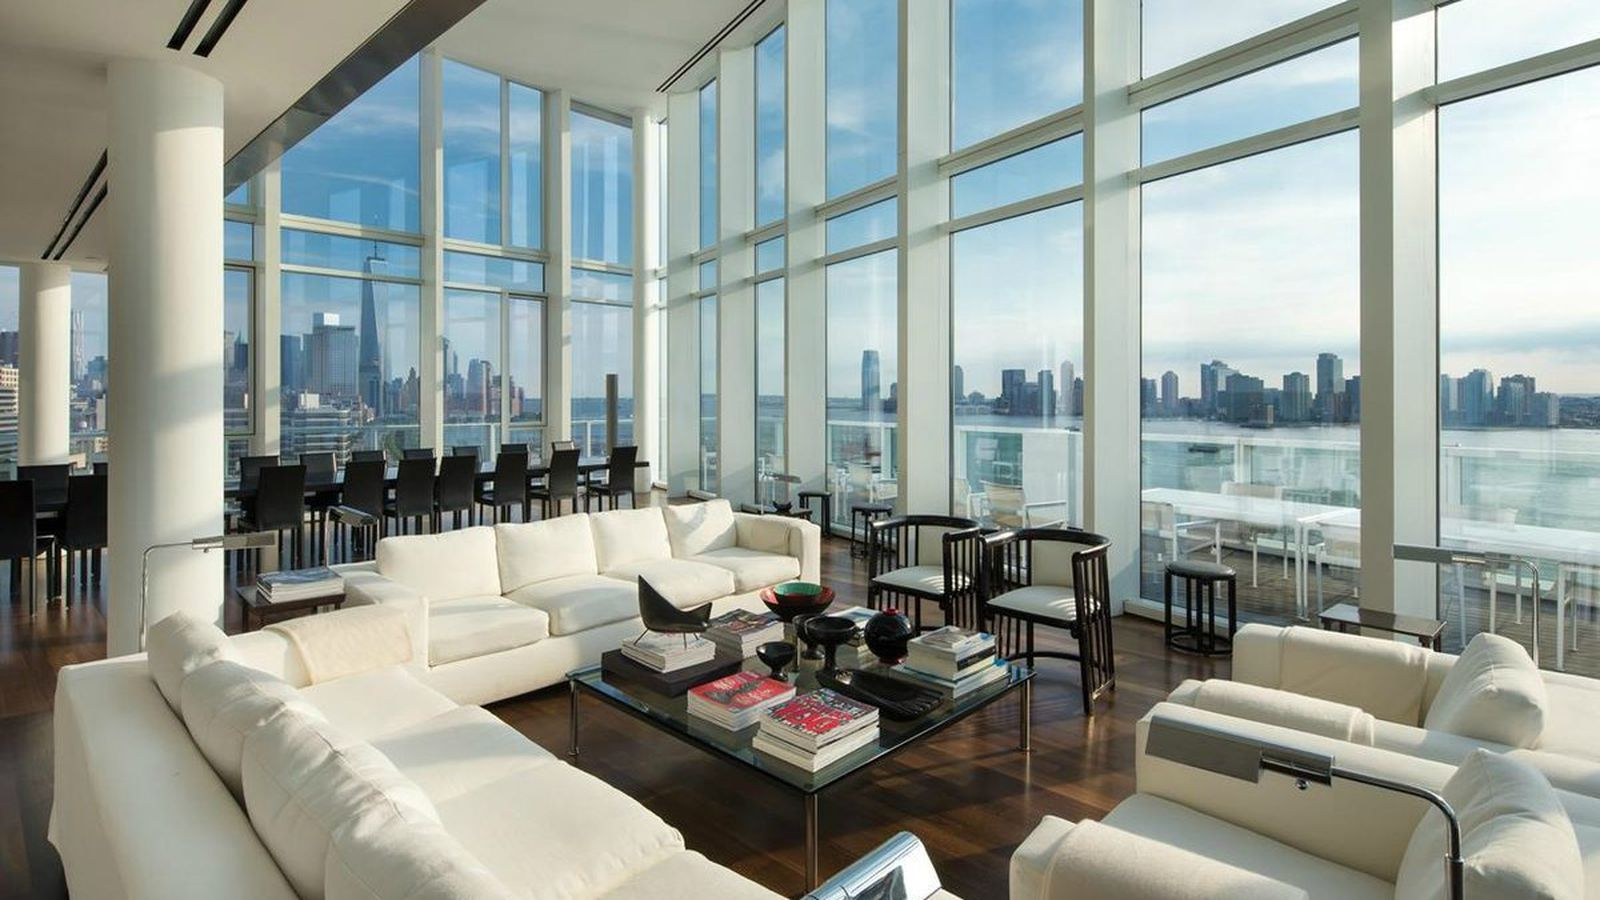 Glassy penthouse at 165 charles street gets 5m price chop for Penthouse for sale nyc